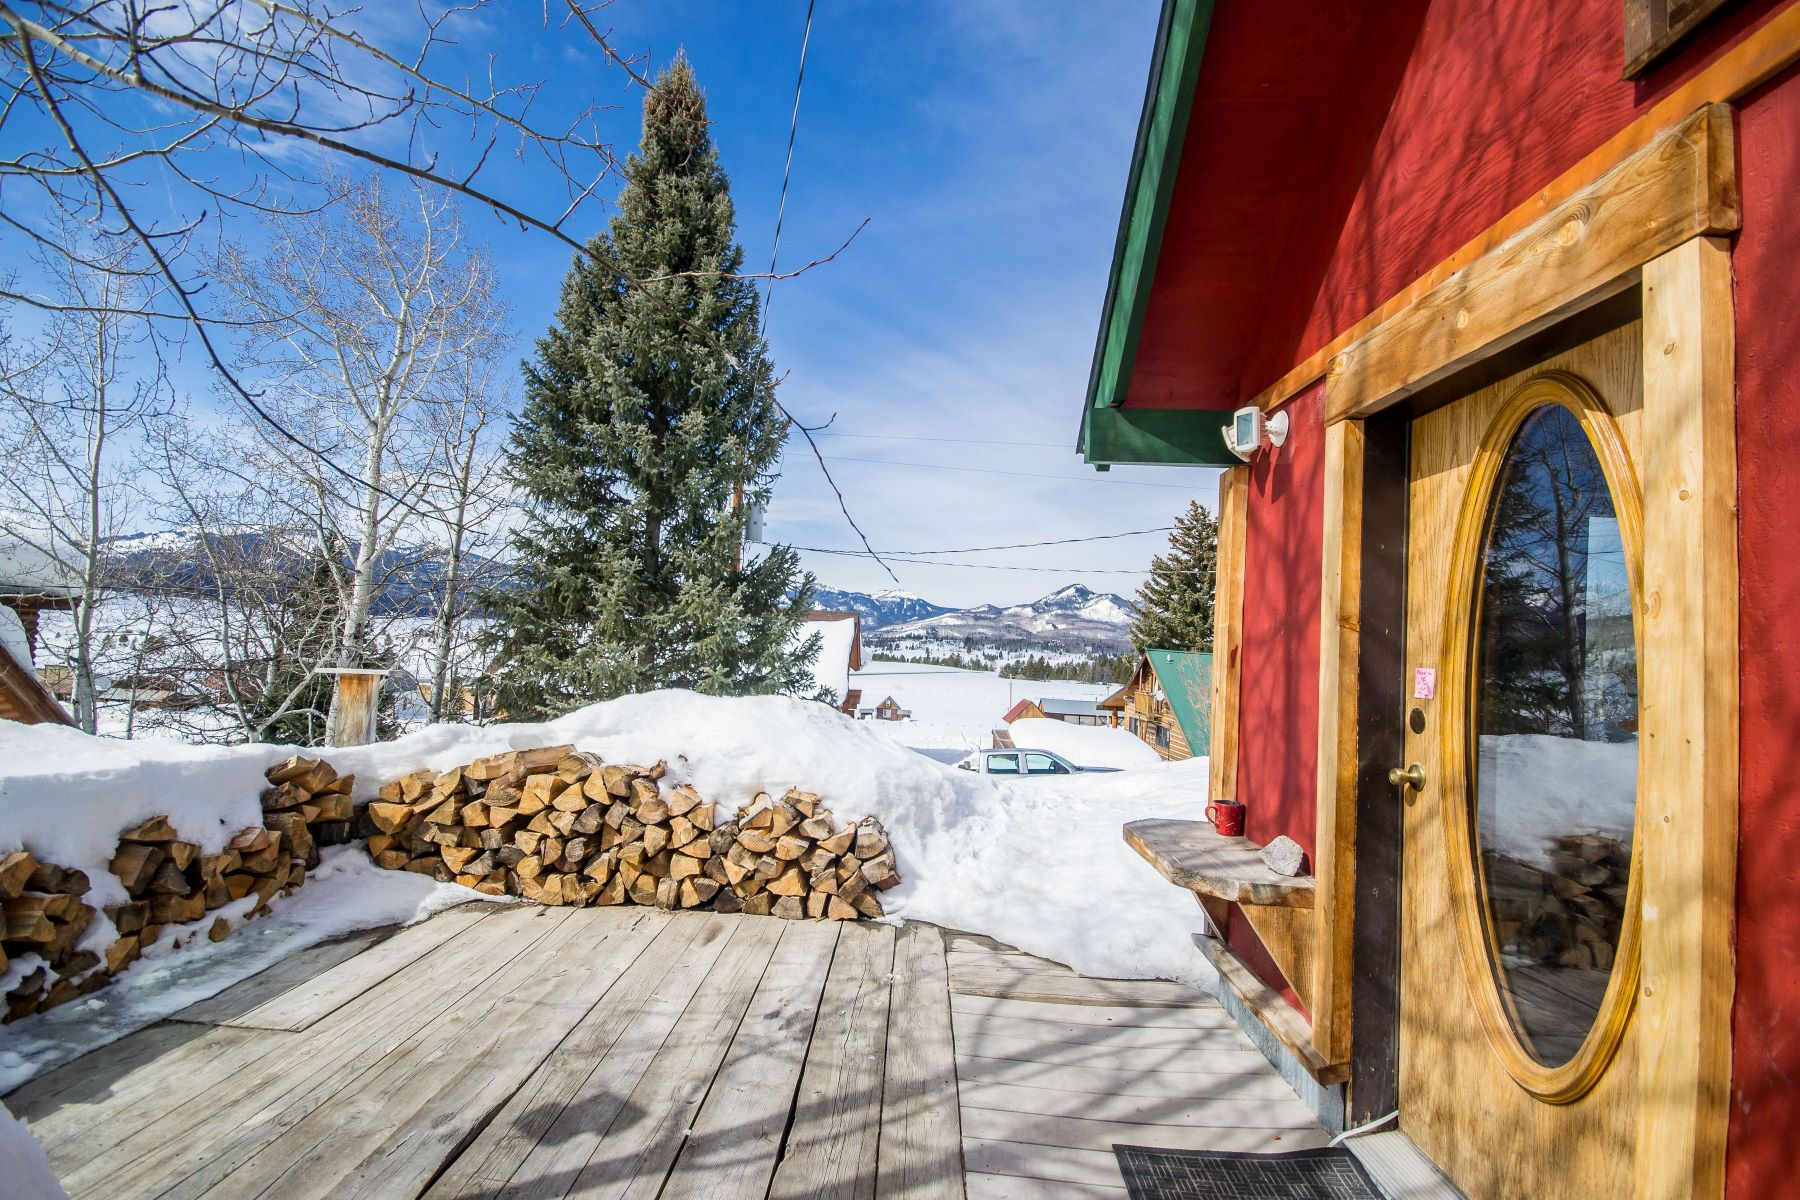 Single Family Home for Sale at North Routt Cabin Near Steamboat Springs, CO 61161 Cottonwood Street Clark, Colorado, 80428 United States